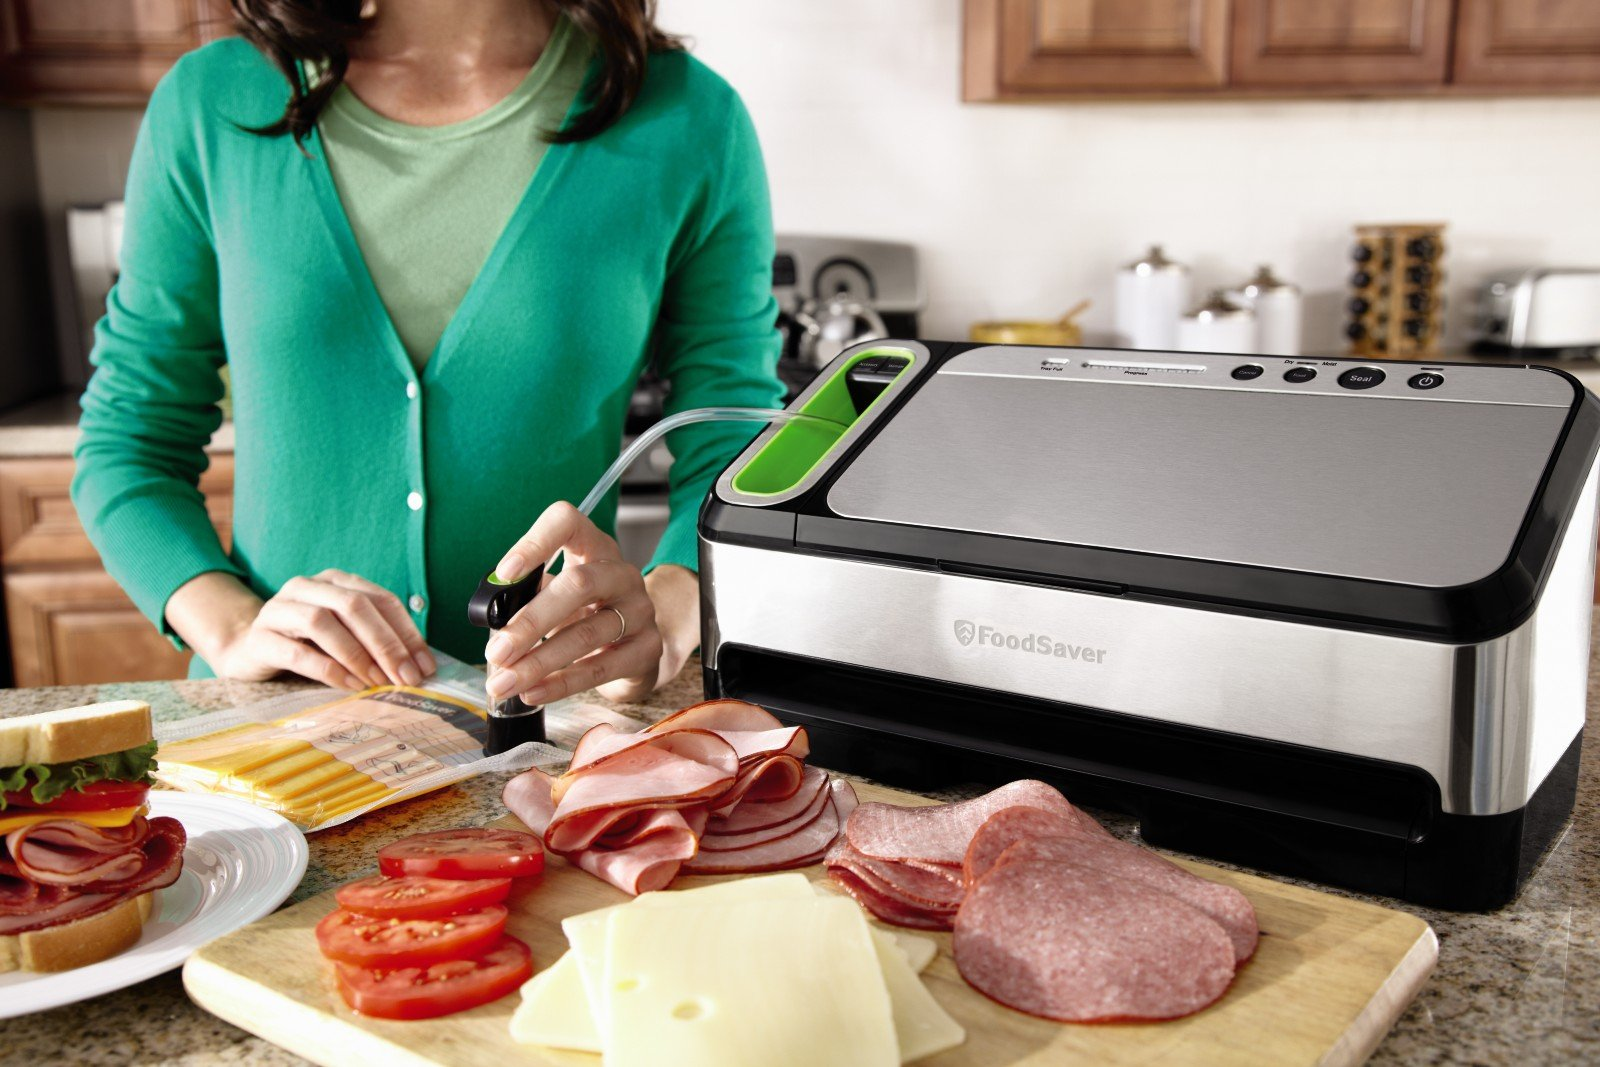 FoodSaver 4840 2 in 1 Vacuum Sealer